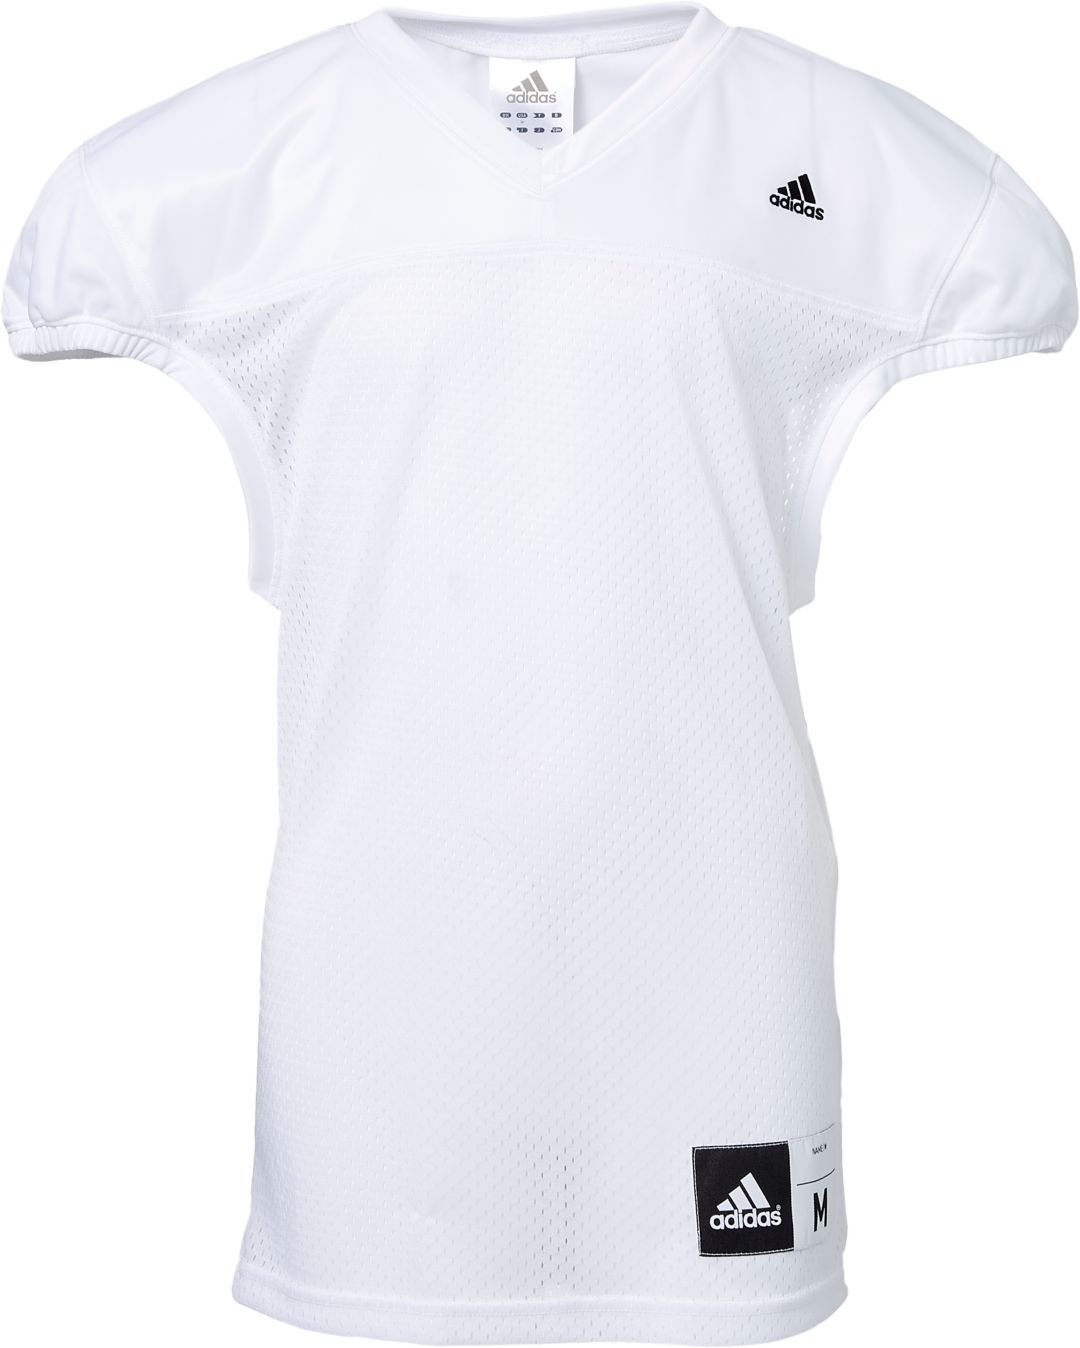 2caabbc9 adidas Youth Football Practice Jersey